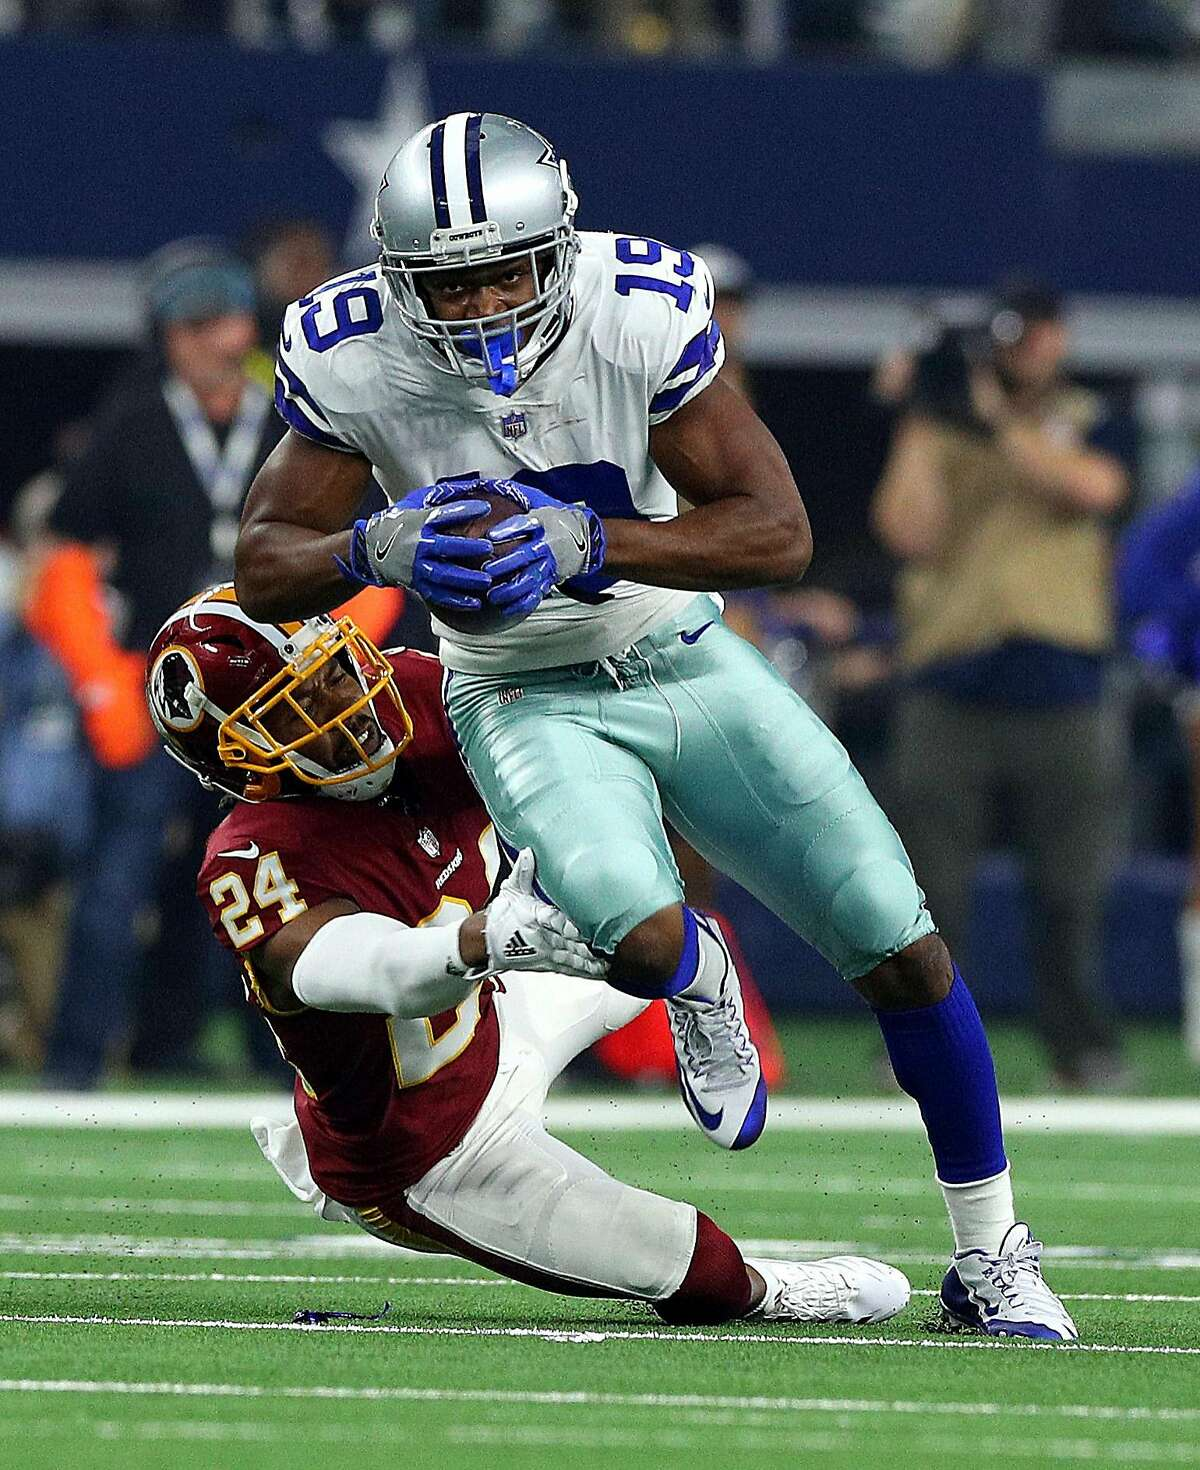 ARLINGTON, TEXAS - NOVEMBER 22: Josh Norman #24 of the Washington Redskins tries to stop Amari Cooper #19 of the Dallas Cowboys in the first quarter of a football game at AT&T Stadium on November 22, 2018 in Arlington, Texas. (Photo by Richard Rodriguez/Getty Images)